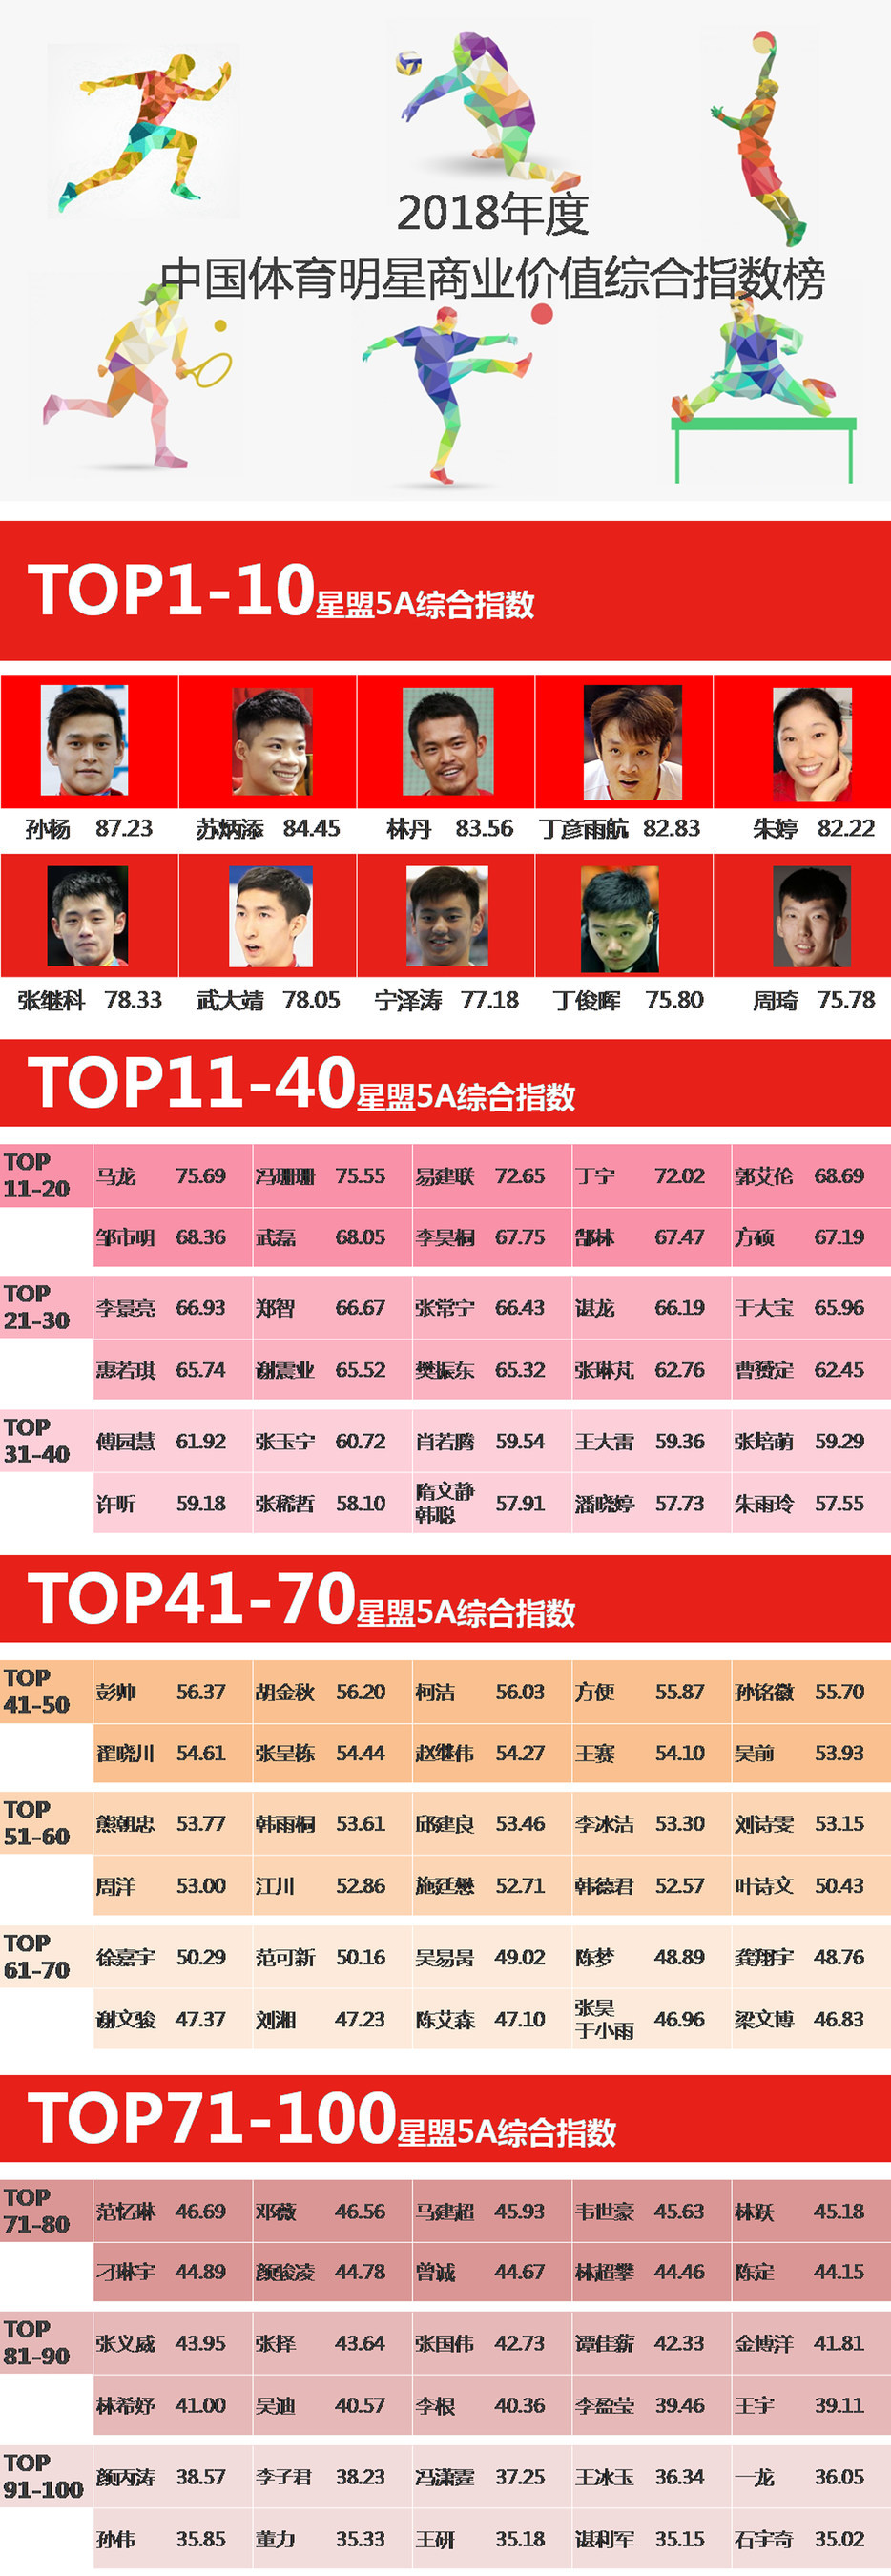 2018 Chinese Sports Stars Commercial Value Potential Index Rankings